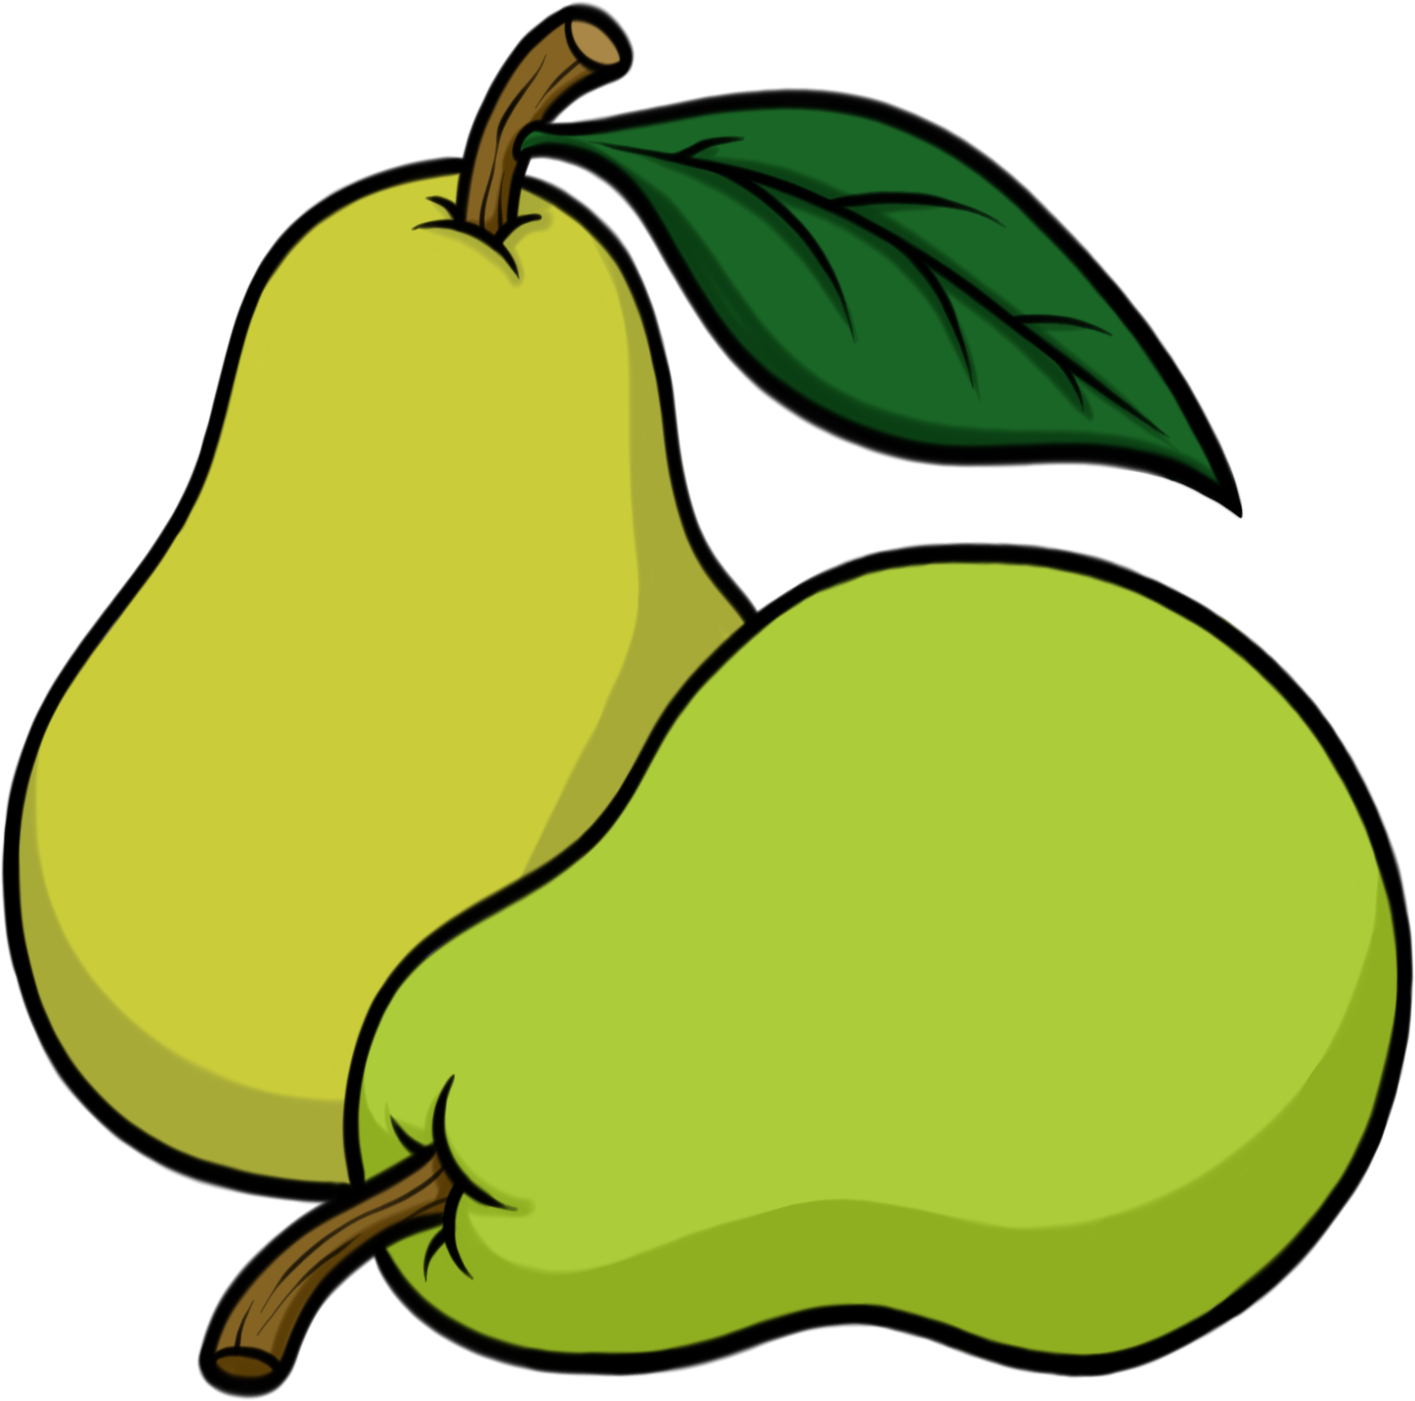 Autistic drawing fur. Image result for pear